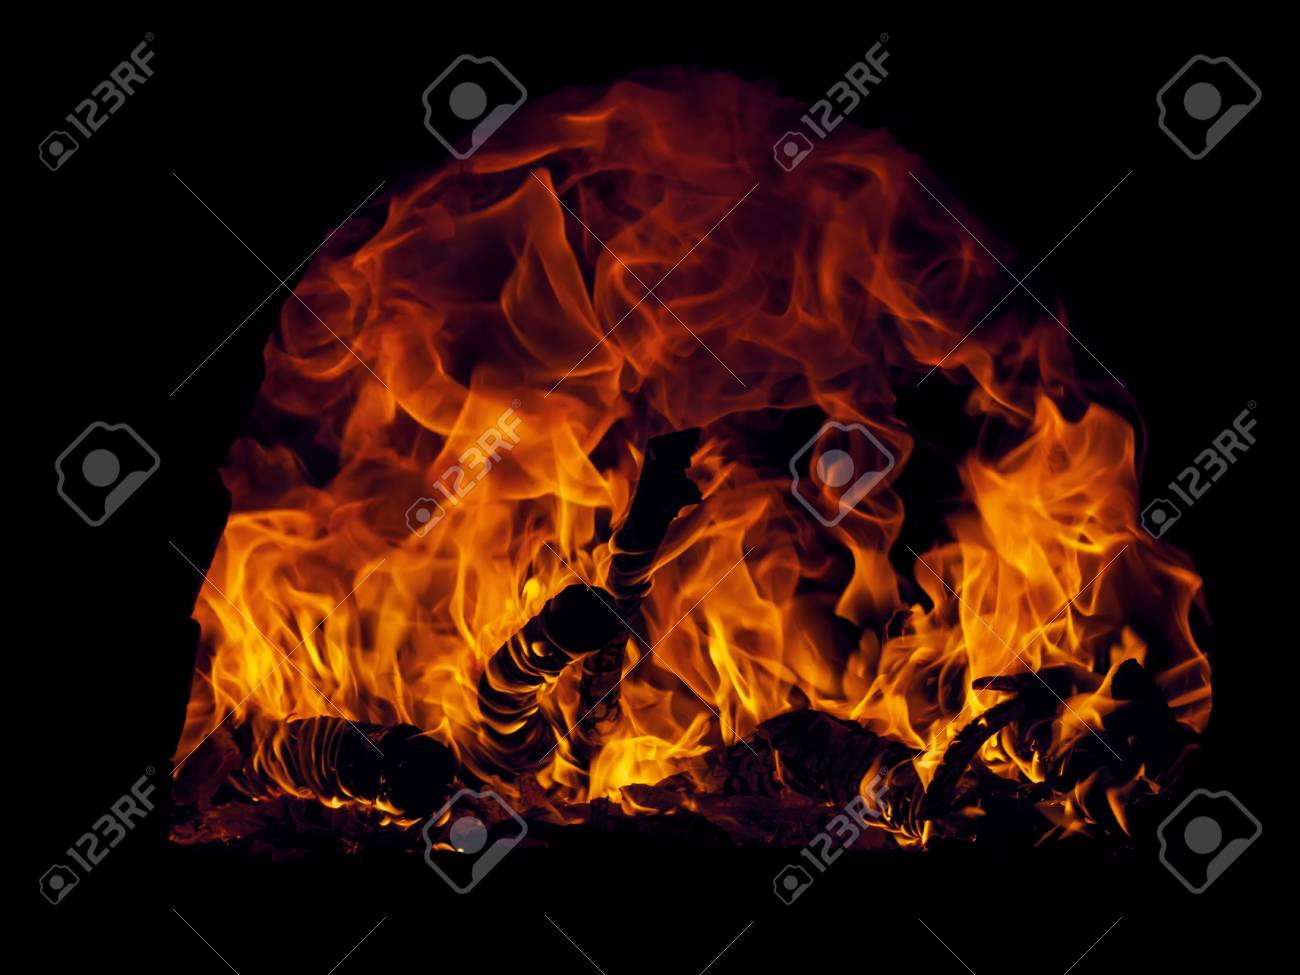 The fire was taken in natural environment. Stock Photo - 20067303